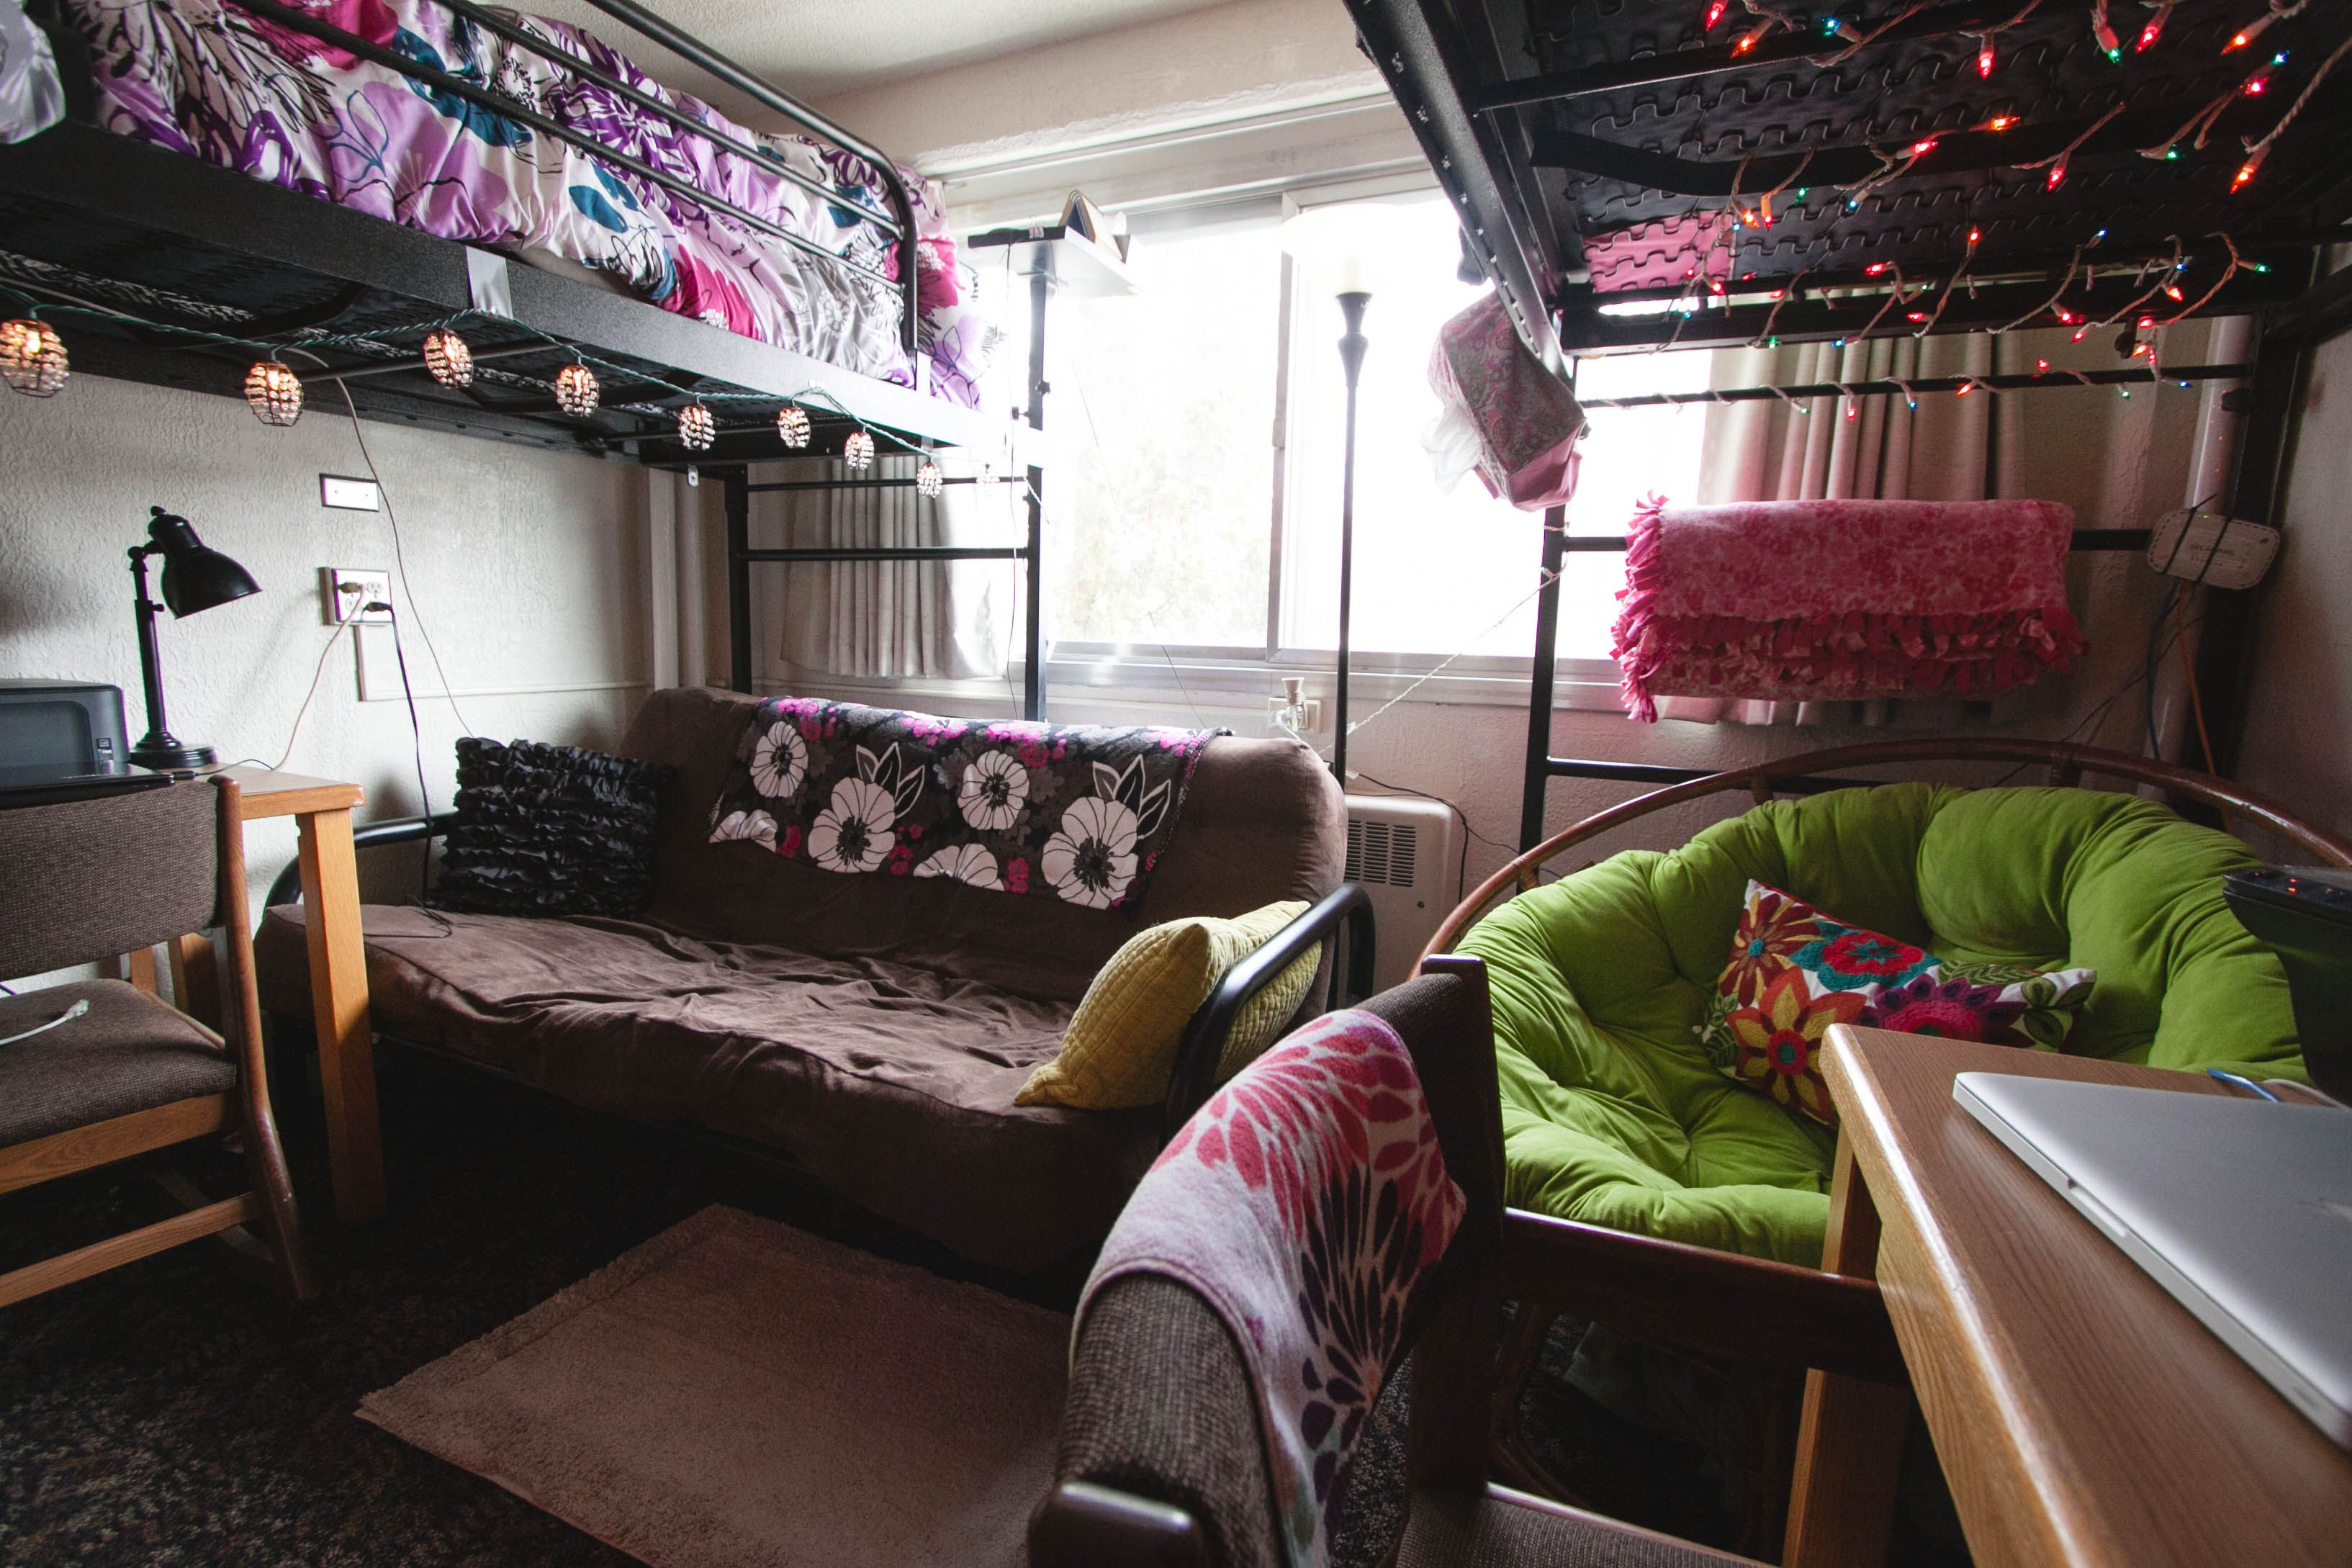 Two Lofted Beds Creates Room For A Lounge Area Underneath